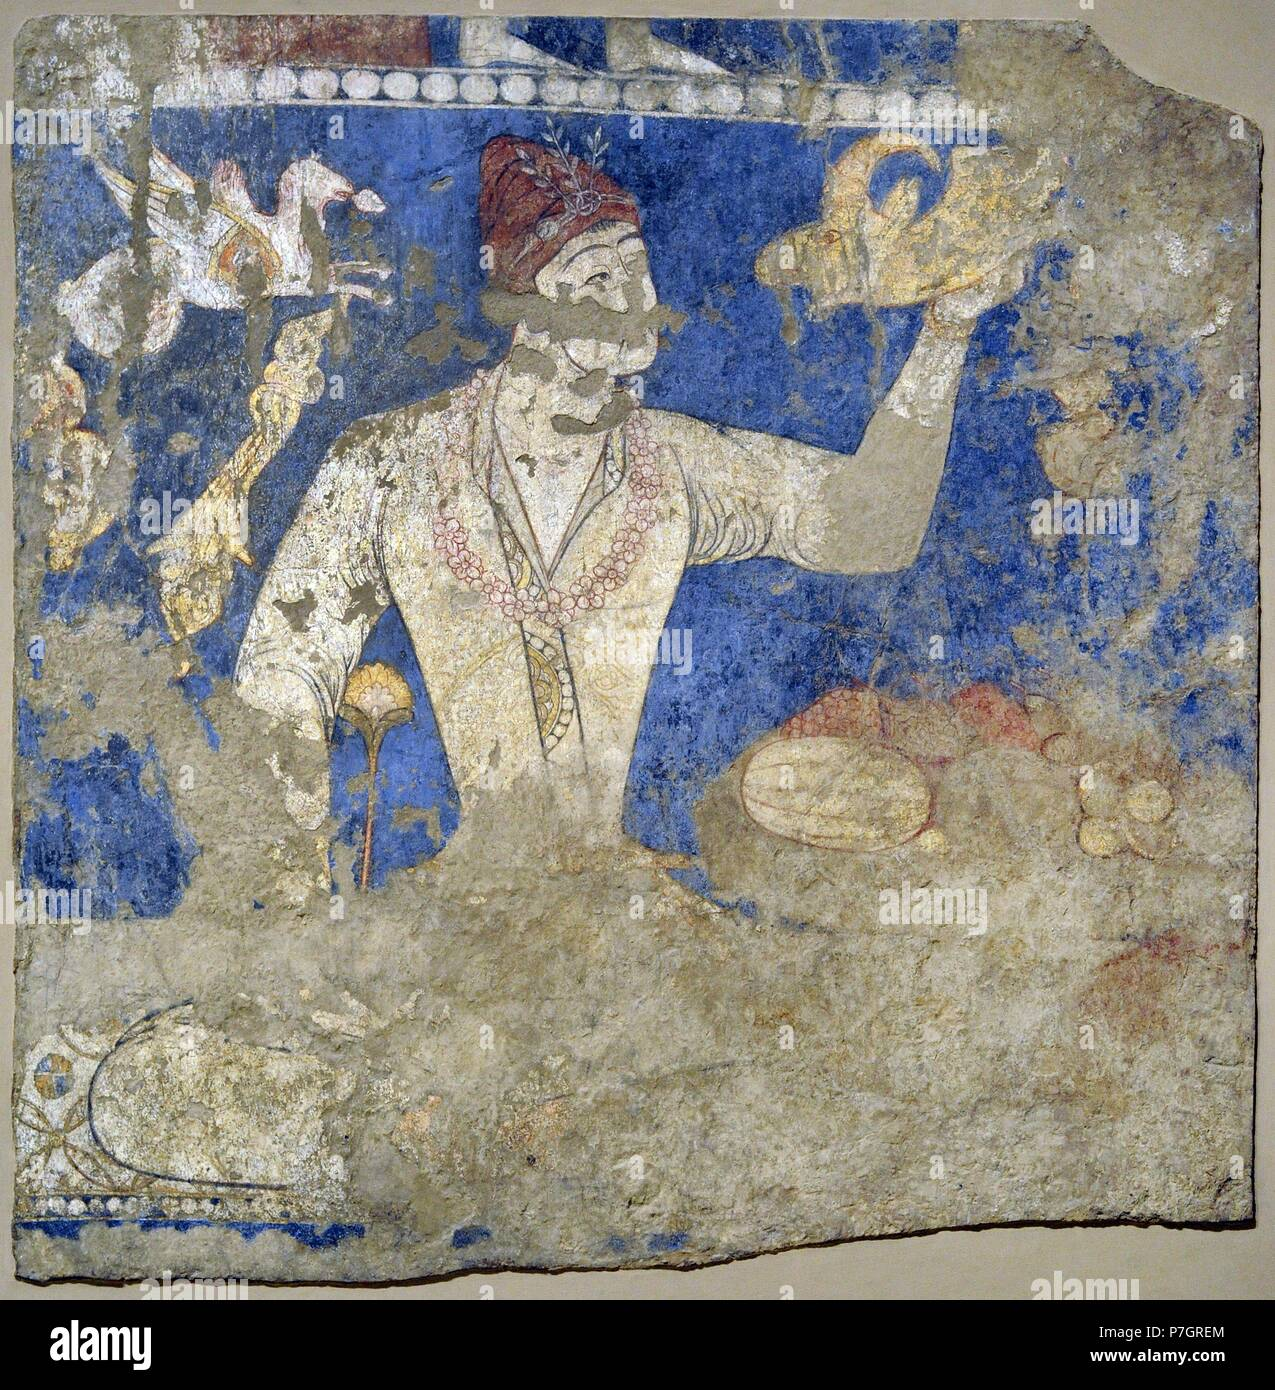 """Sogdia. Pre-Islamic Central Asia. Mural. Feasting ones """"Artists"""". Wall painting. Glue colour on dry loess plaster. First half of the 8th C. Penjikent, Tajikistan. Sector XXIV. Chamber 1. The State Hermitage Museum. Saint Petersburg. Russia. Stock Photo"""